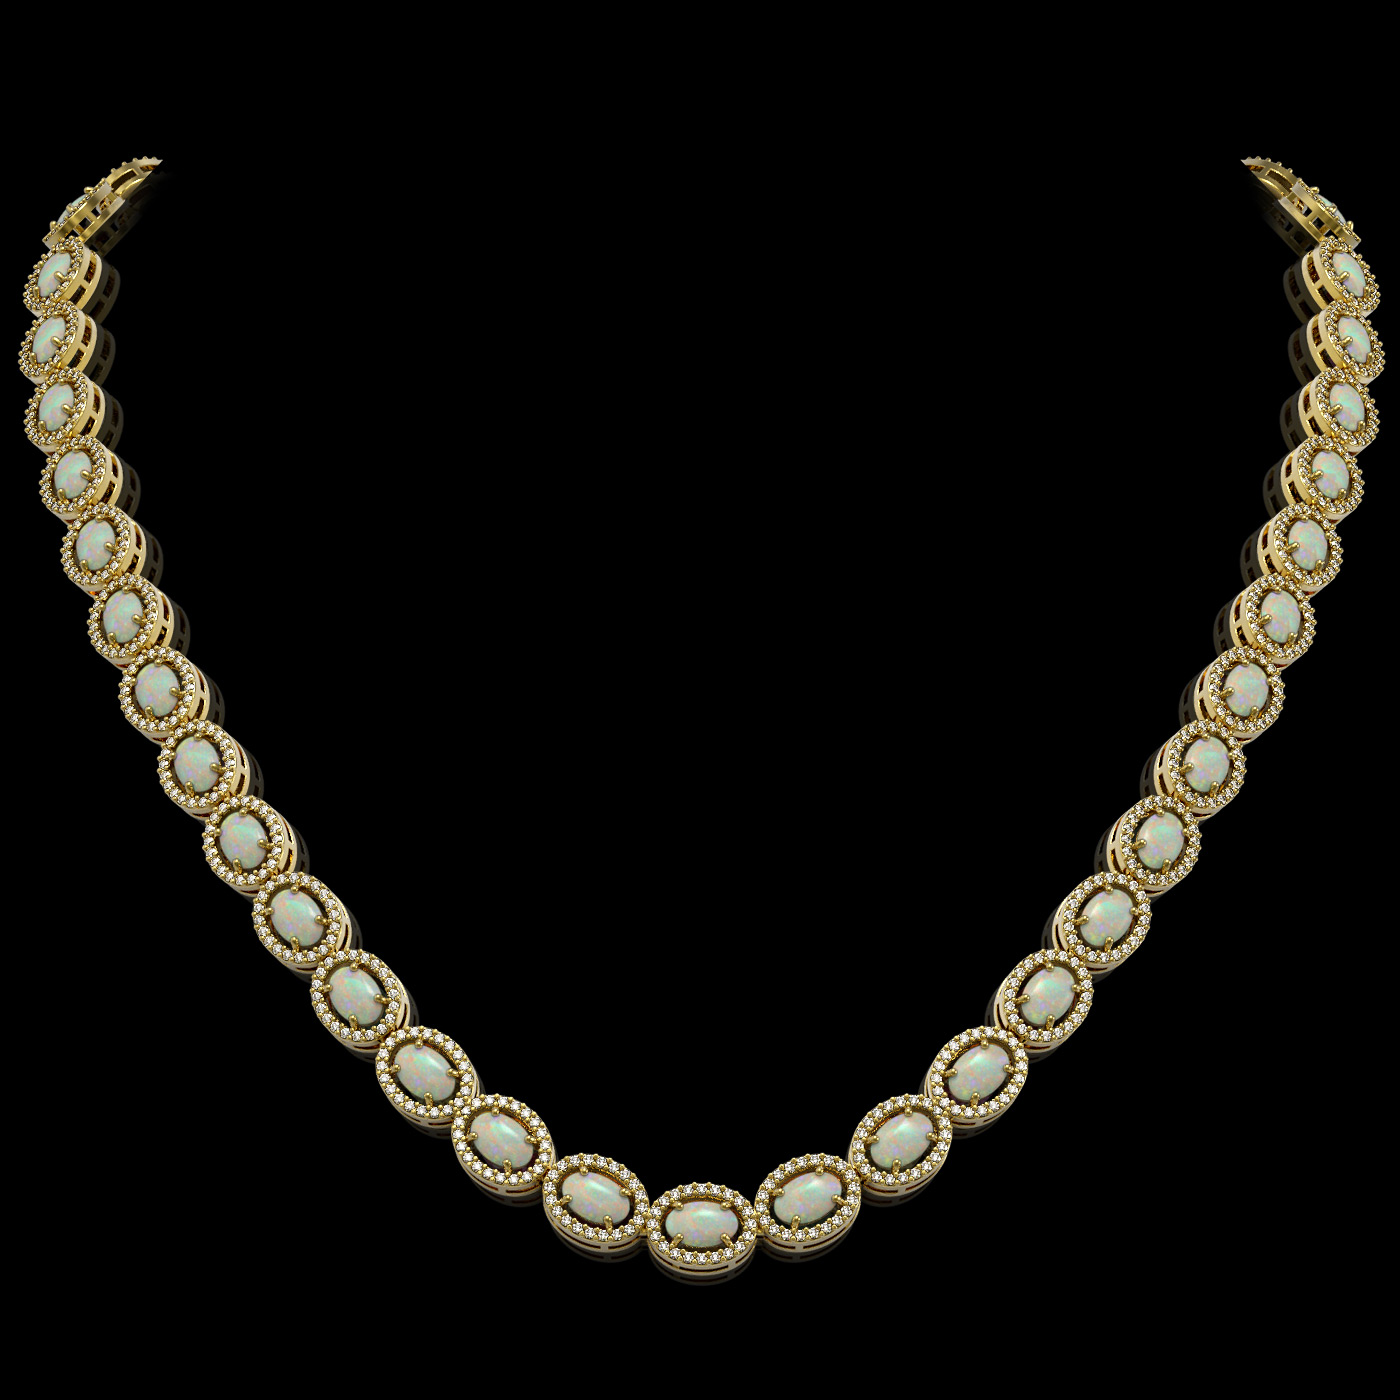 21.21 Ctw Opal & Diamond Necklace Yellow Gold